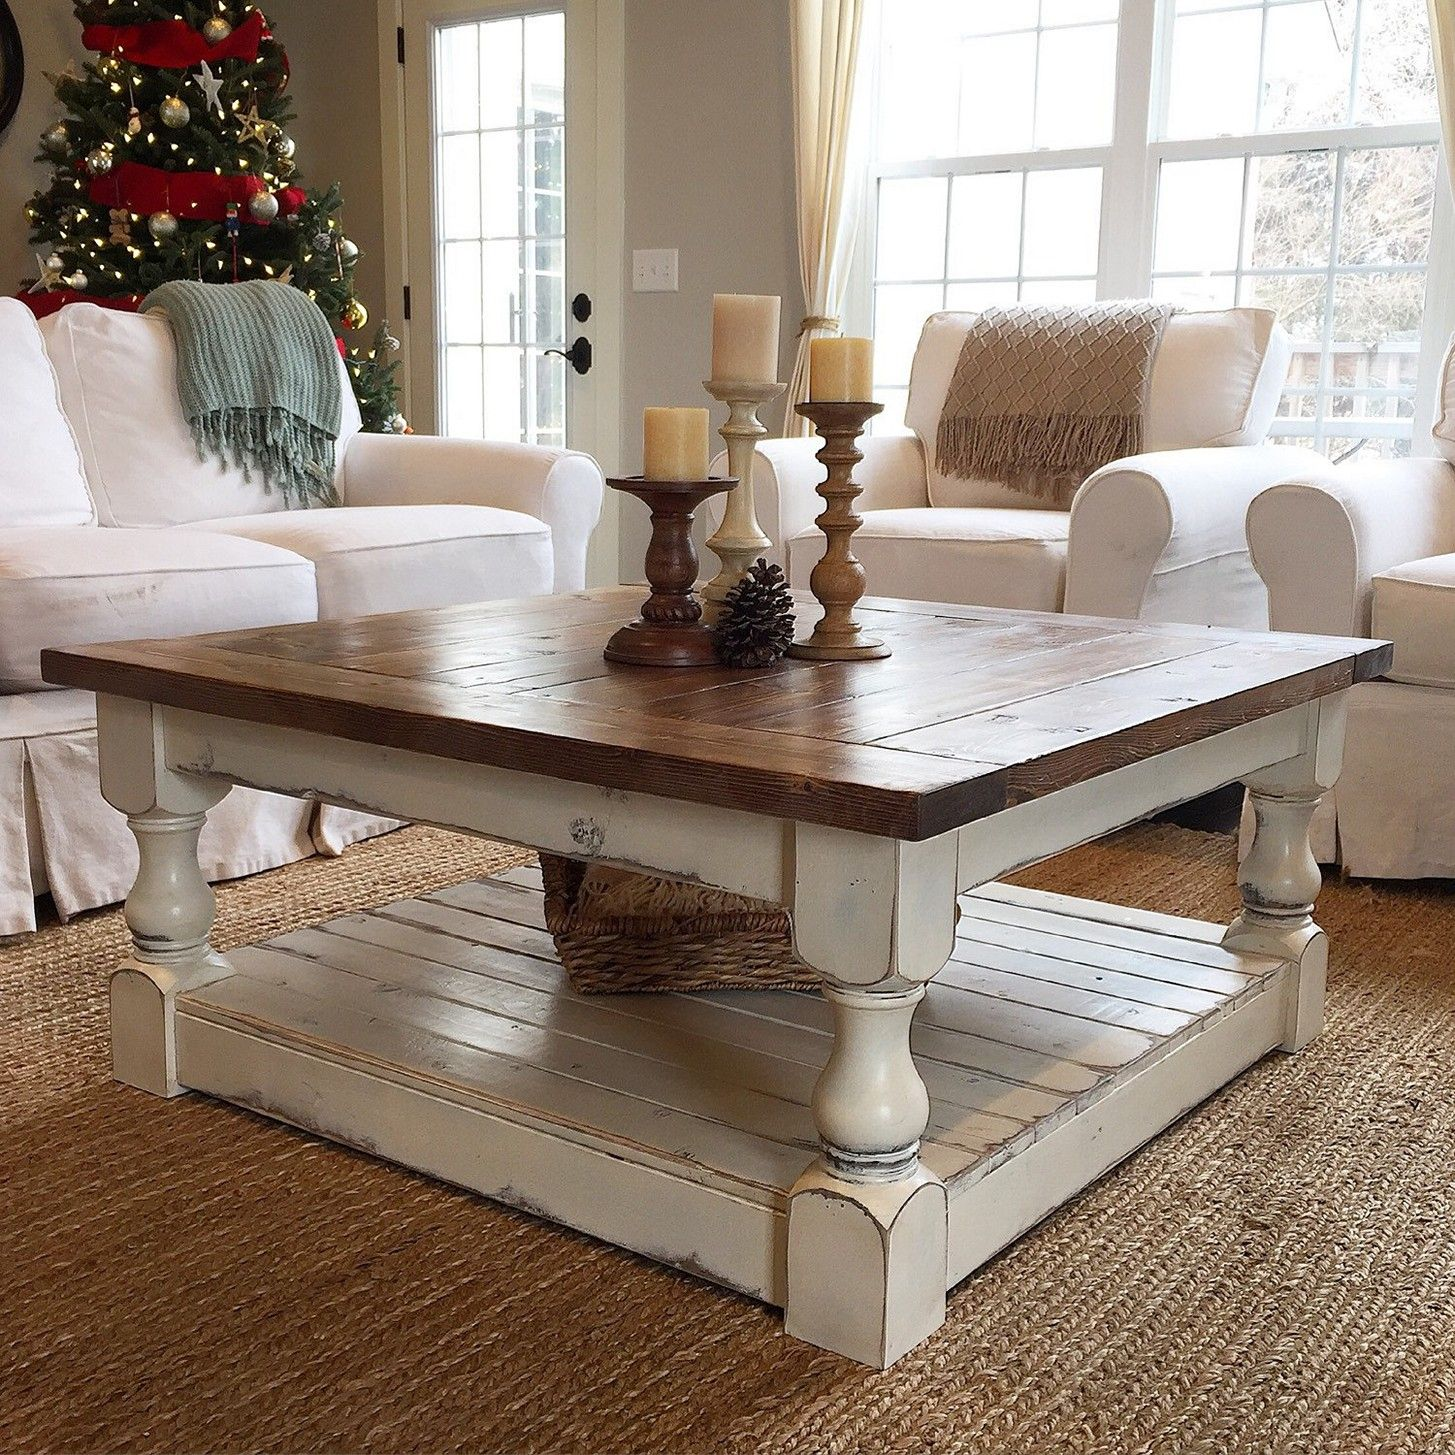 sofa table legs the terrific farmhouse end ideas chunky coffee tures diy pinte more round side with shelf leon brown wicker distressed living room tables matching chest drawers